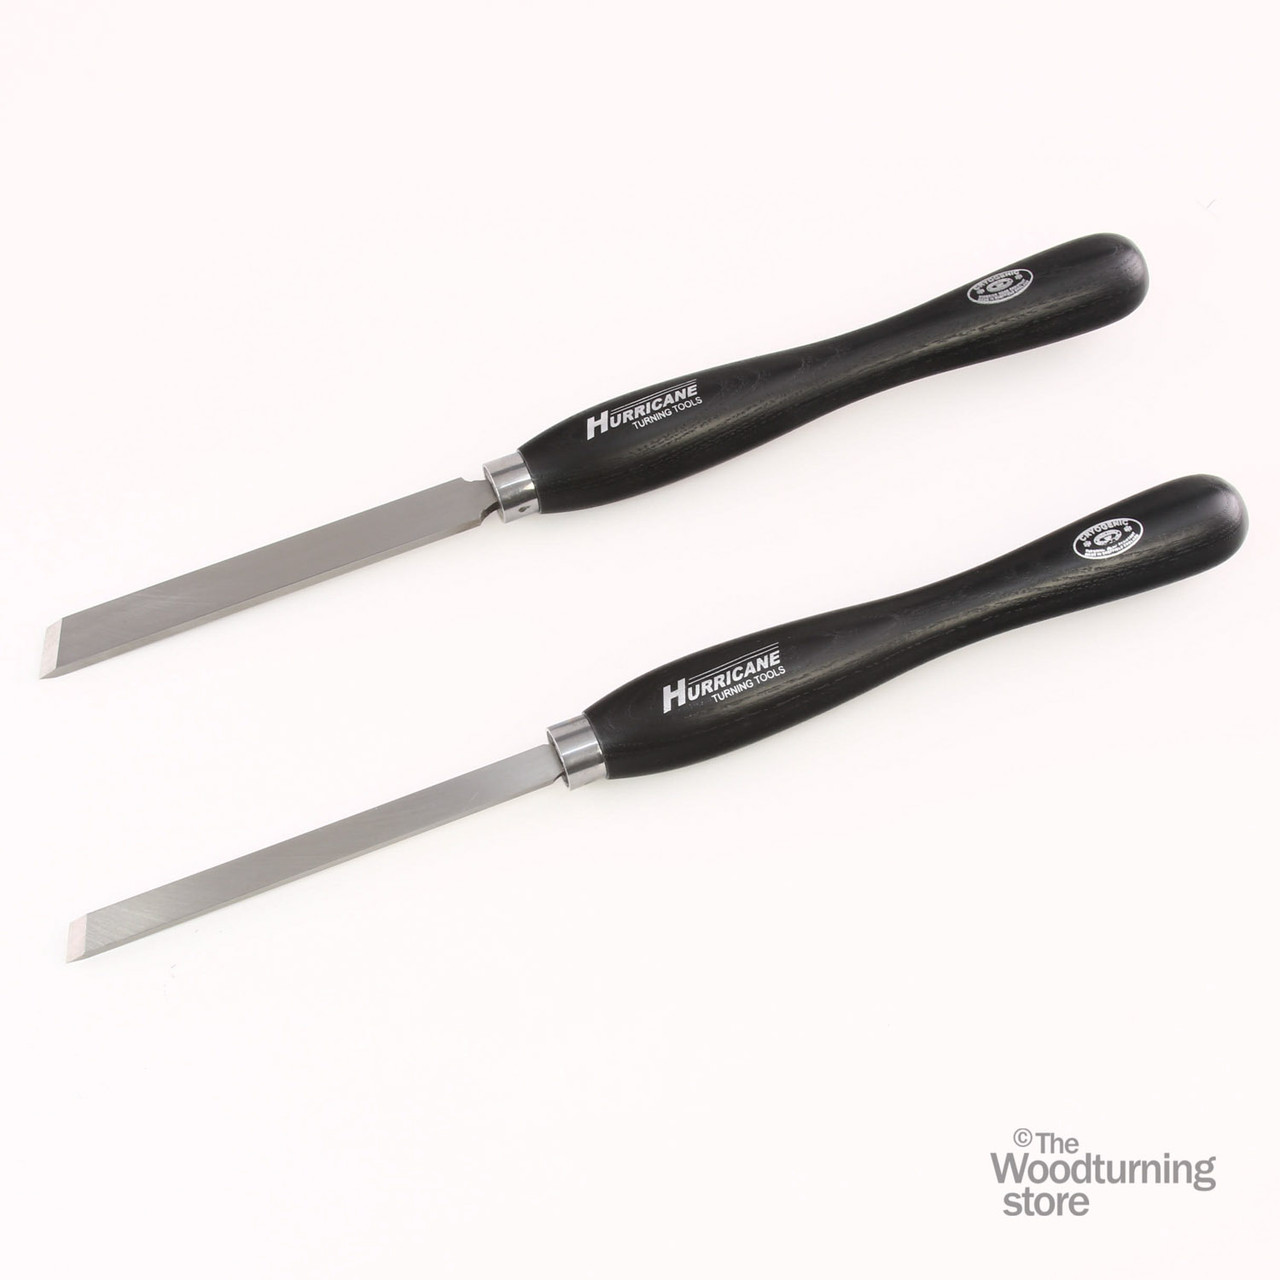 """Hurricane M2 Cryo, 2 Piece Skew Chisel Pro Tool Set (3/4"""" and 1/2"""" Wide)"""